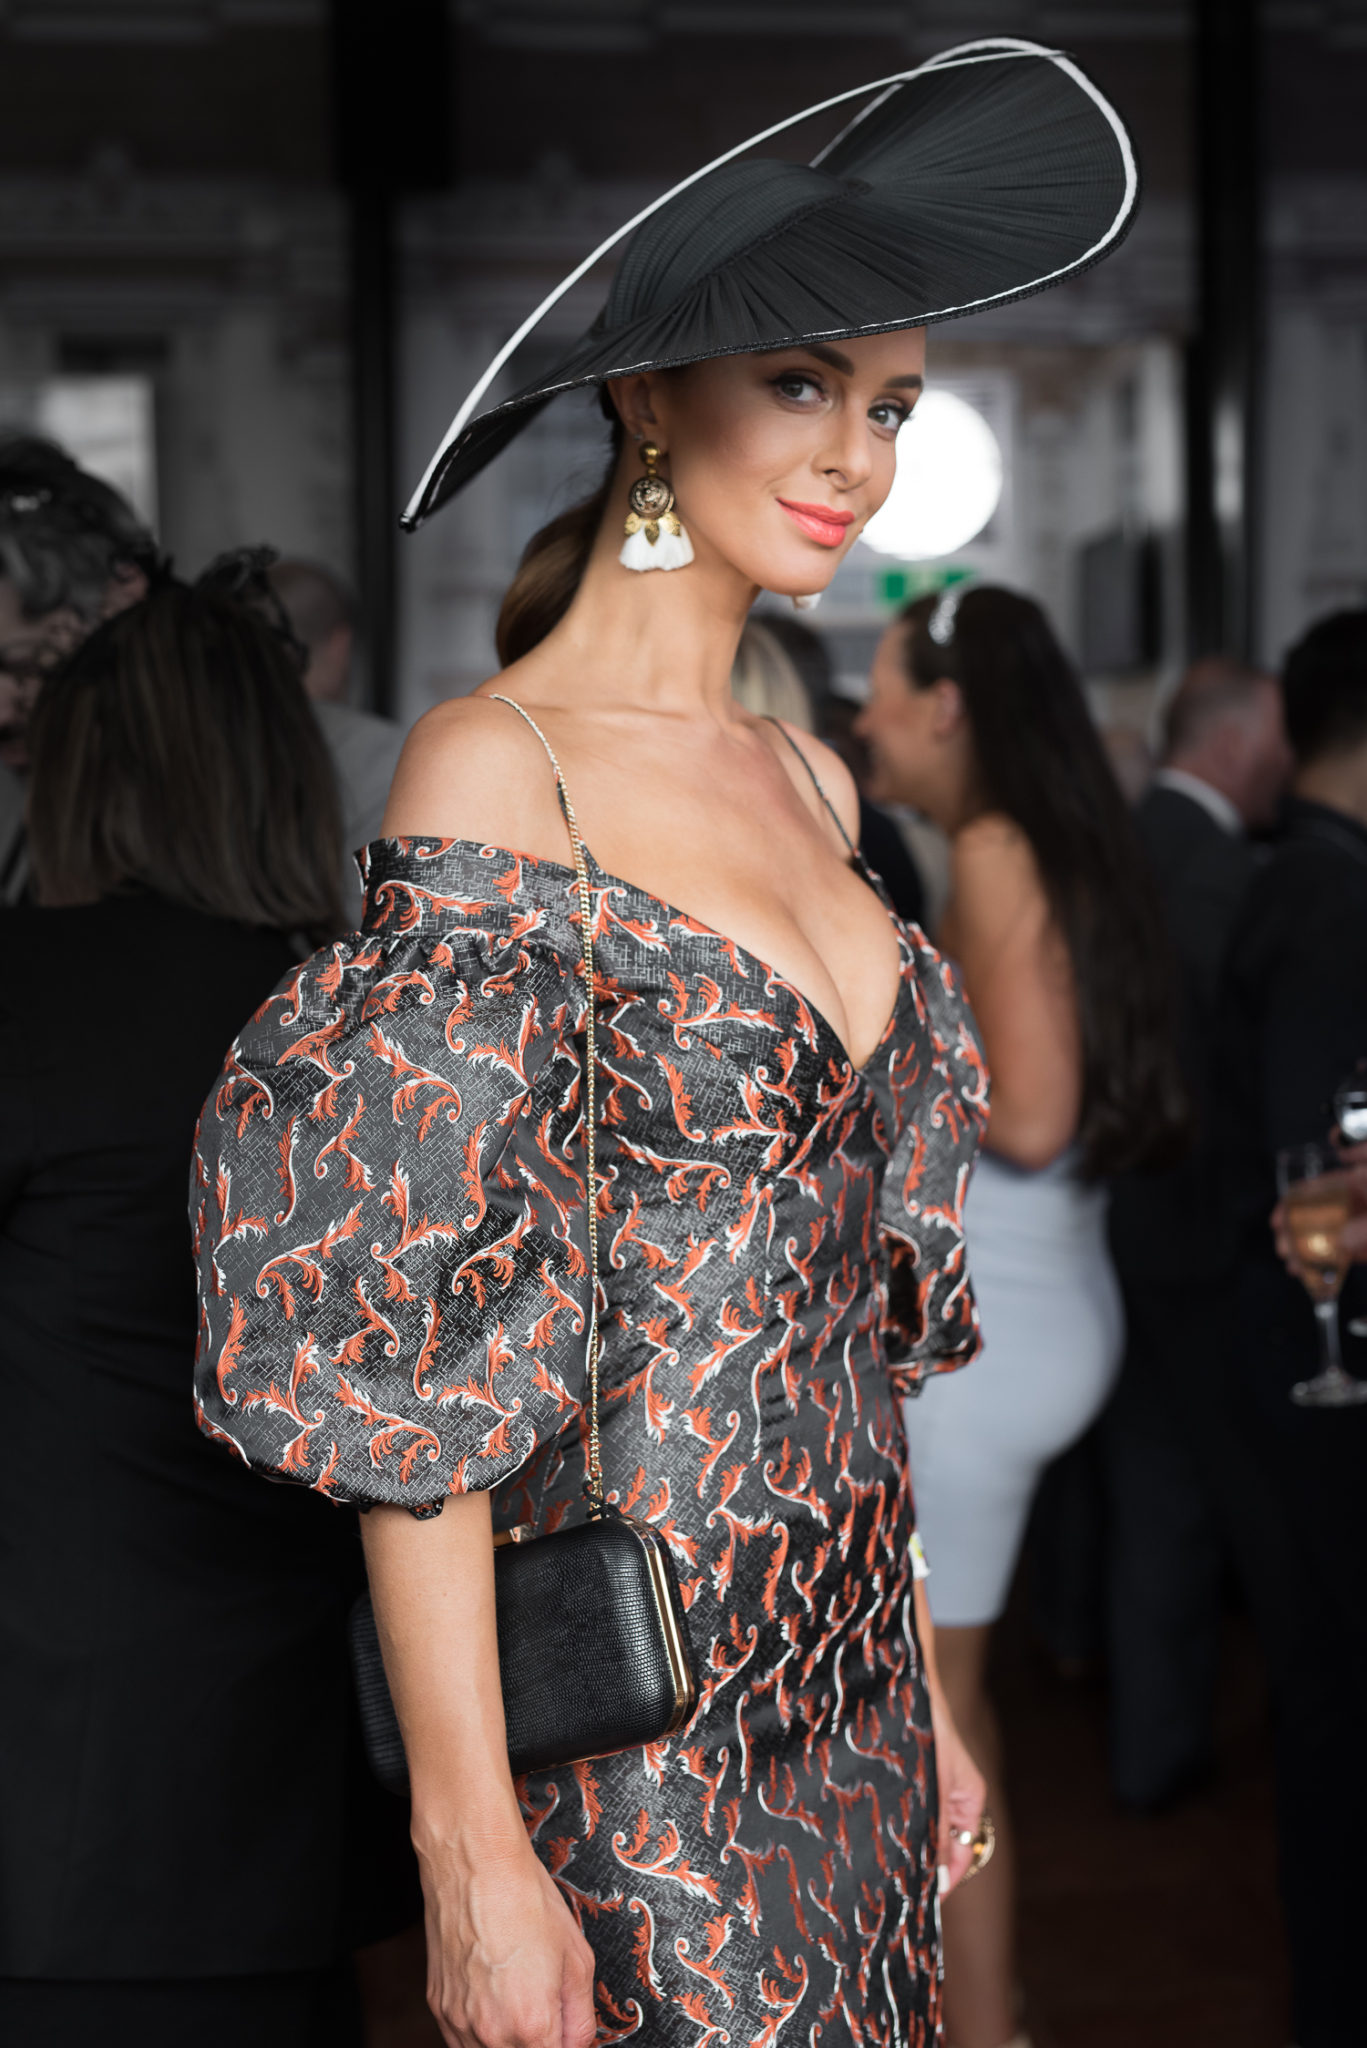 melbourne-cup-day-lavazza-whatwouldkarldo_0035